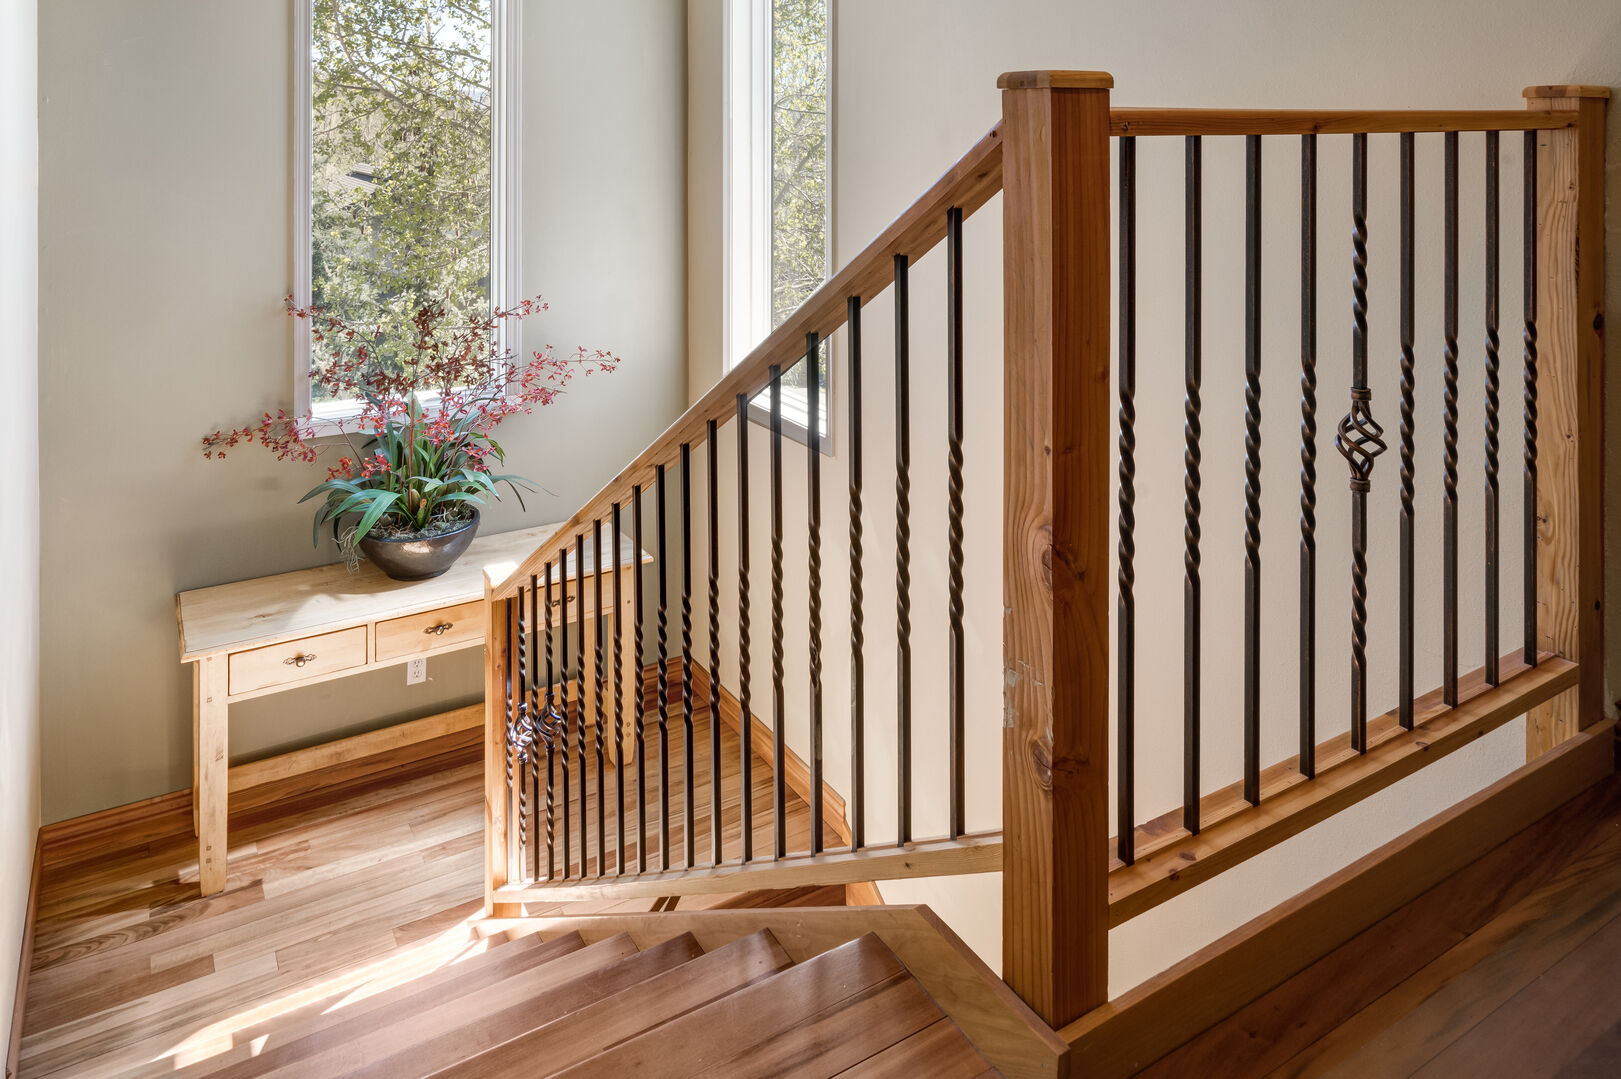 Sunny stairwell leading to the upper floor bedroom and bath, cozy nook with desk off to the right.